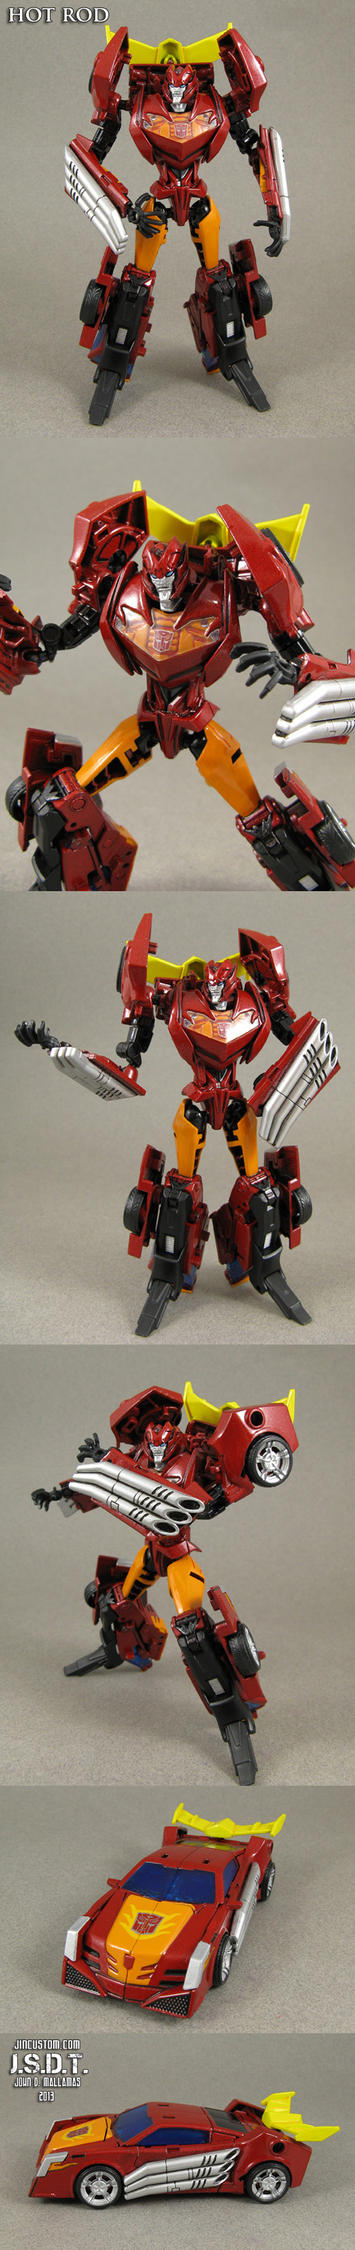 Custom Transformers Prime Hot Rod Figure by Jin-Saotome